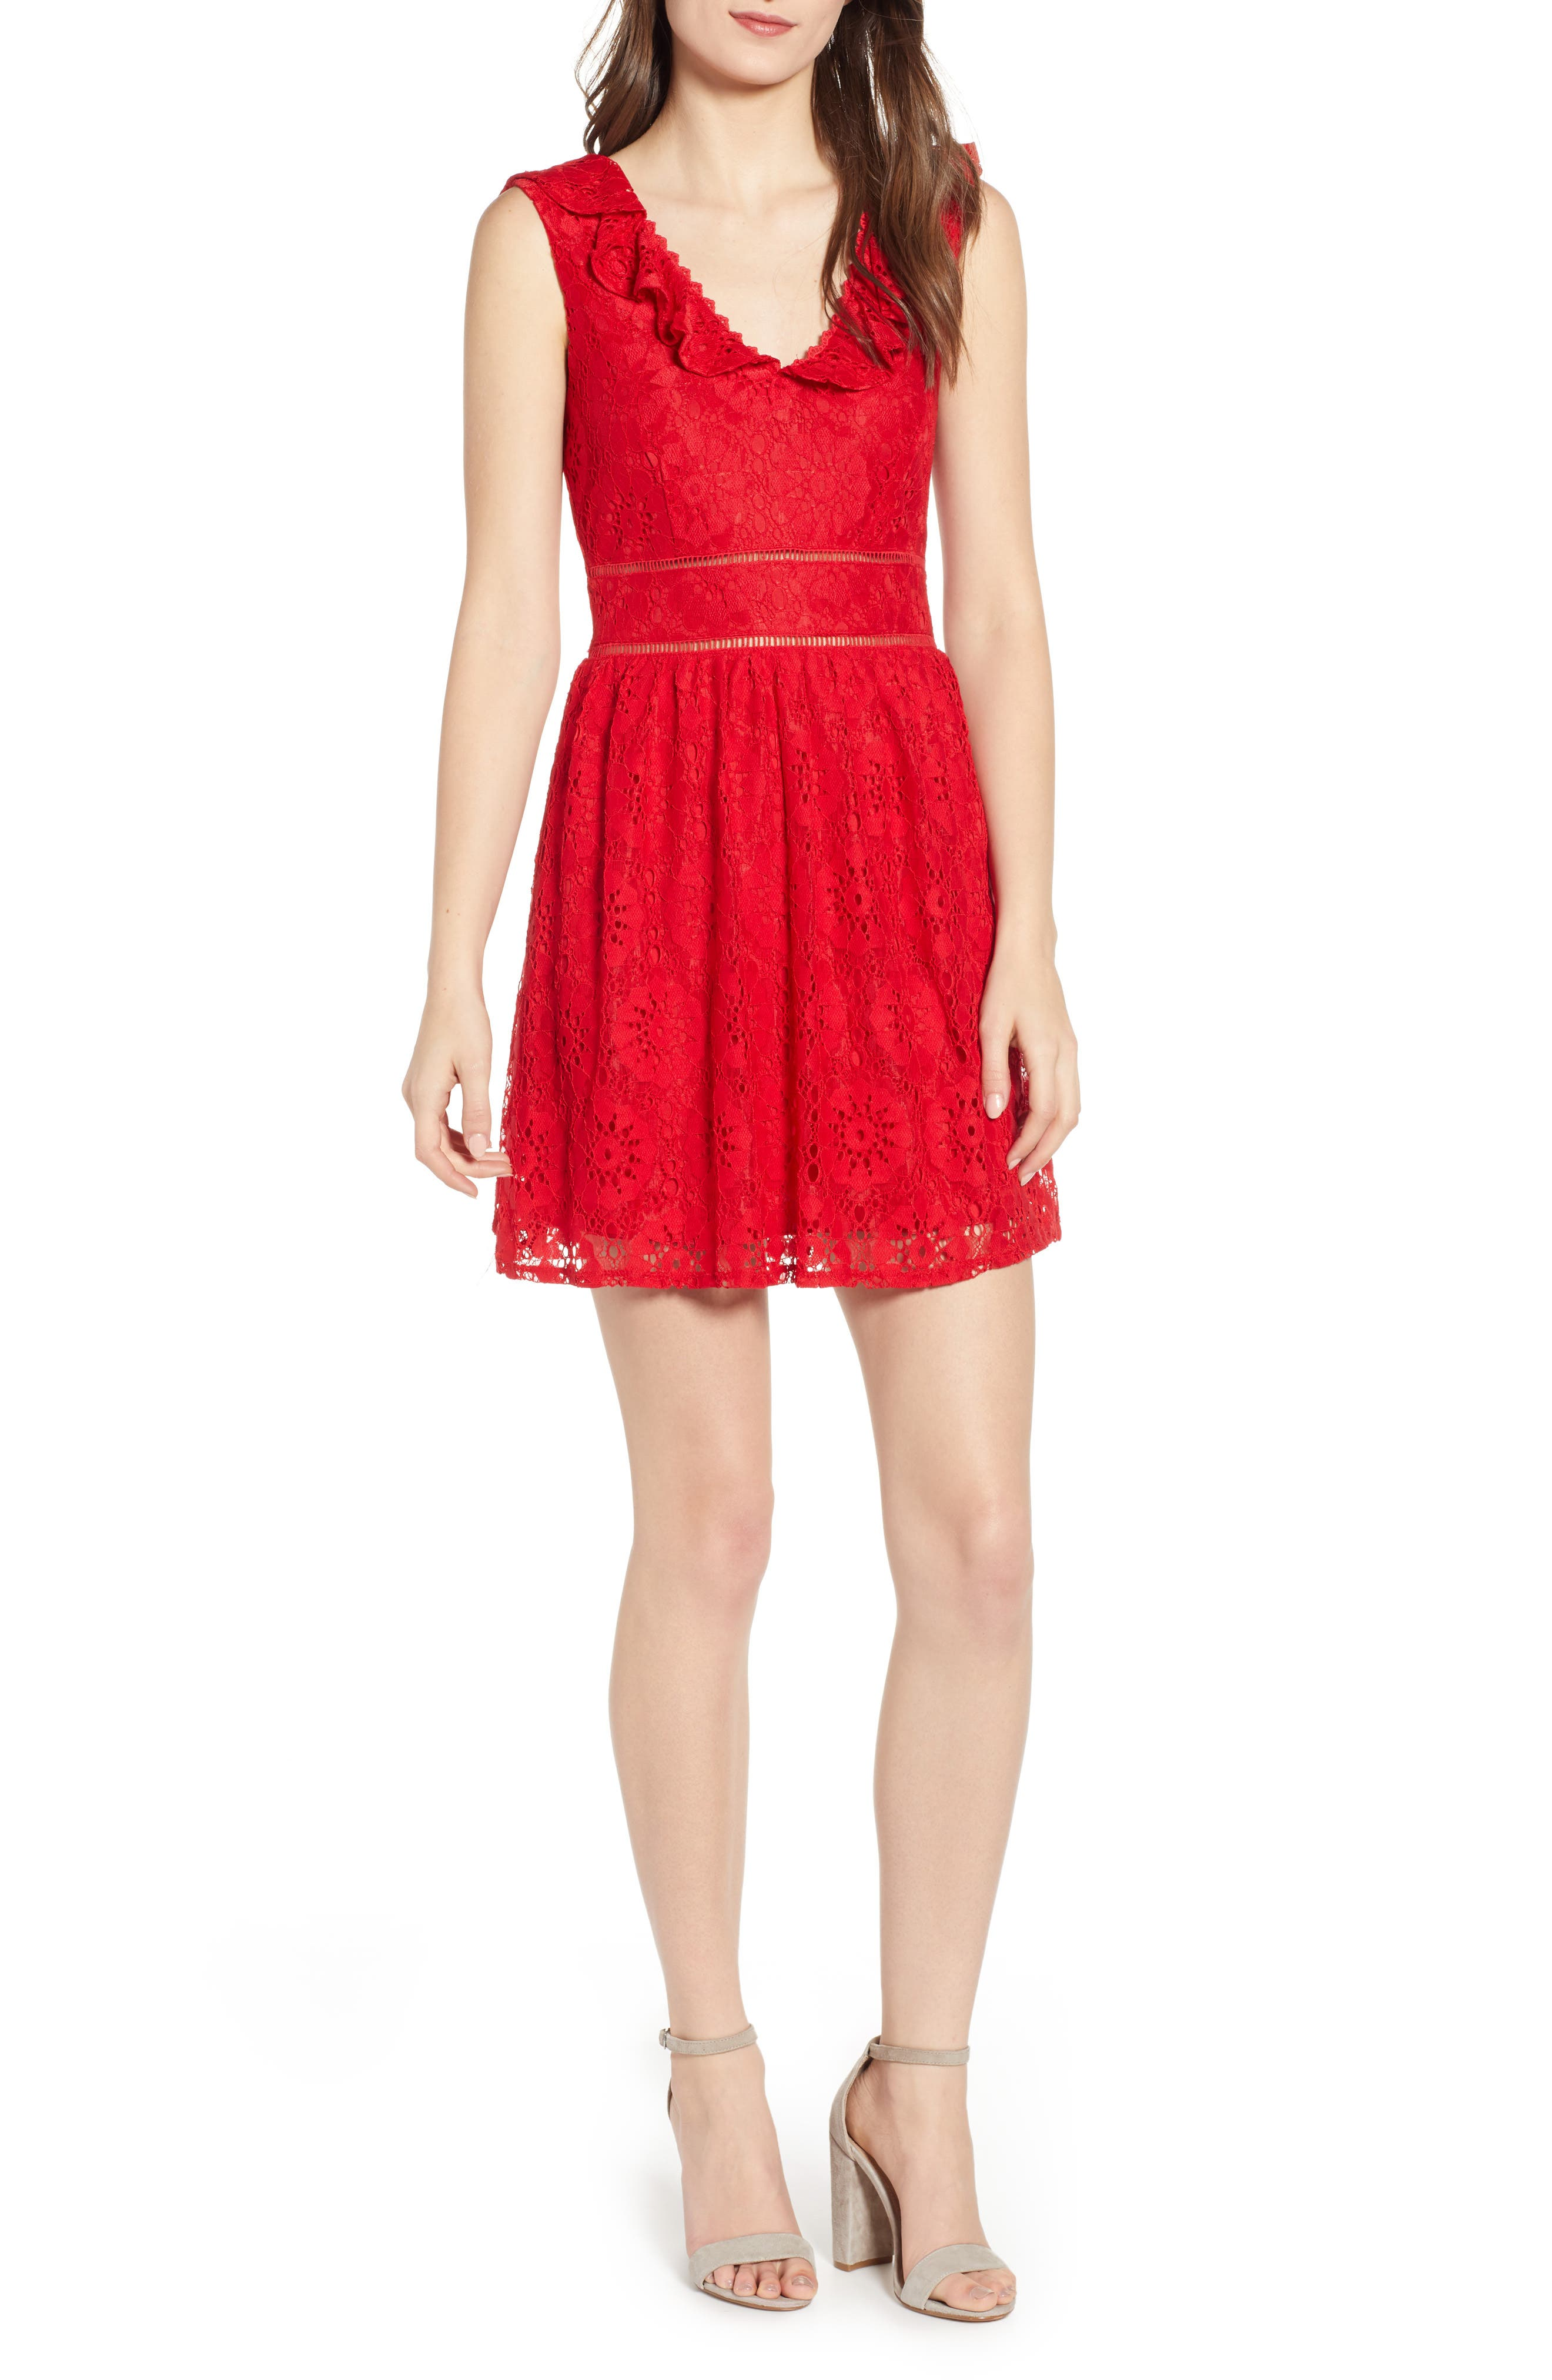 SPEECHLESS Lace Ruffle Neck Skater Dress, Main, color, RED